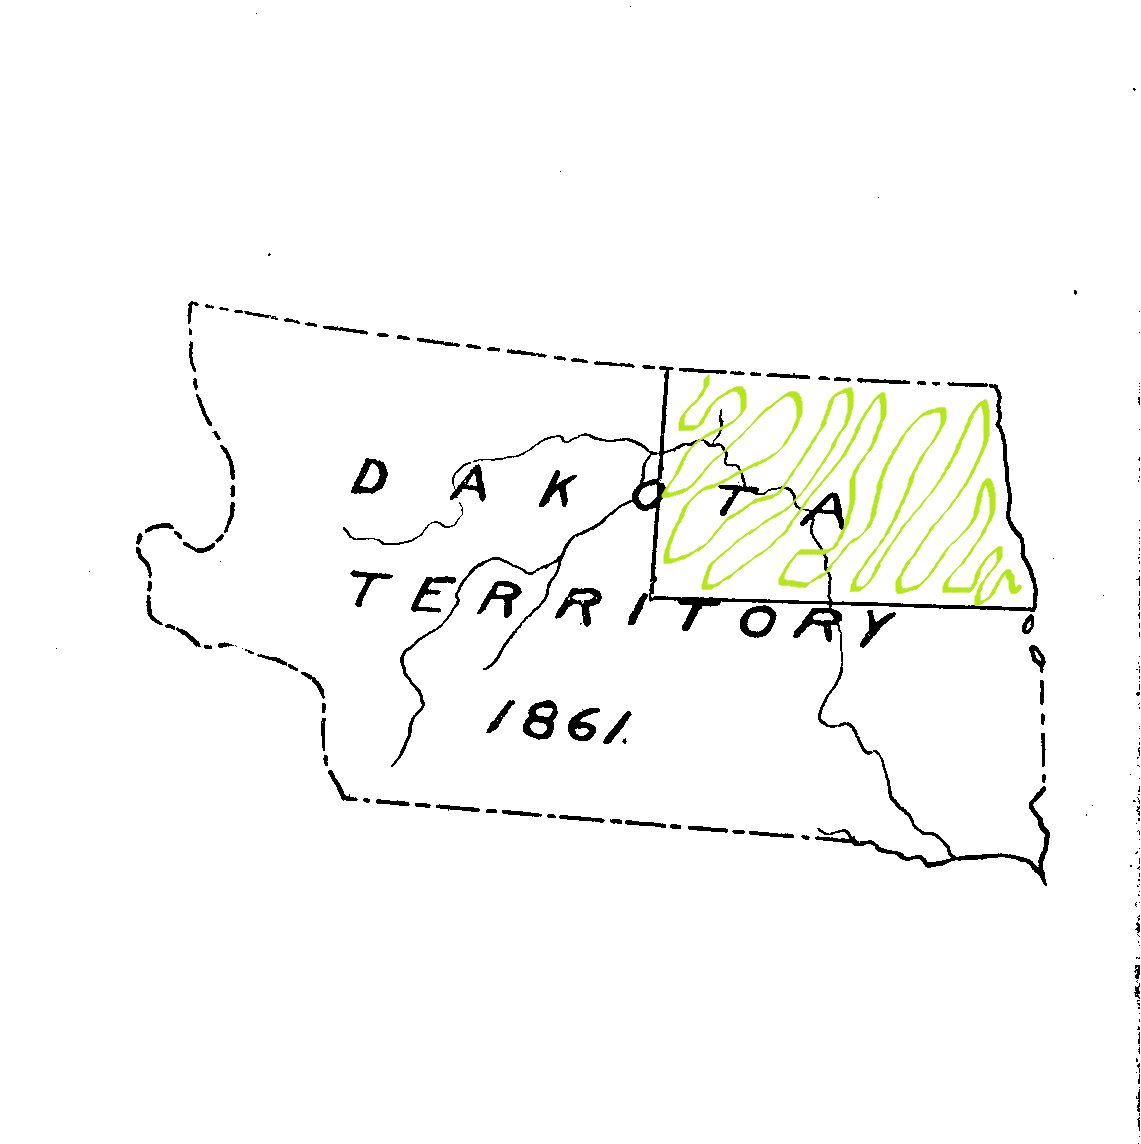 In 1861, Congress responded to the requests of the residents of Yankton and created Dakota Territory. Once again, the shape changed. Nebraska was no longer the governing body of western Dakota. Now, the tiny villages of Yankton, Sioux Falls, and Pembina were responsible for governing a huge territory that spread across modern day Montana and Wyoming.